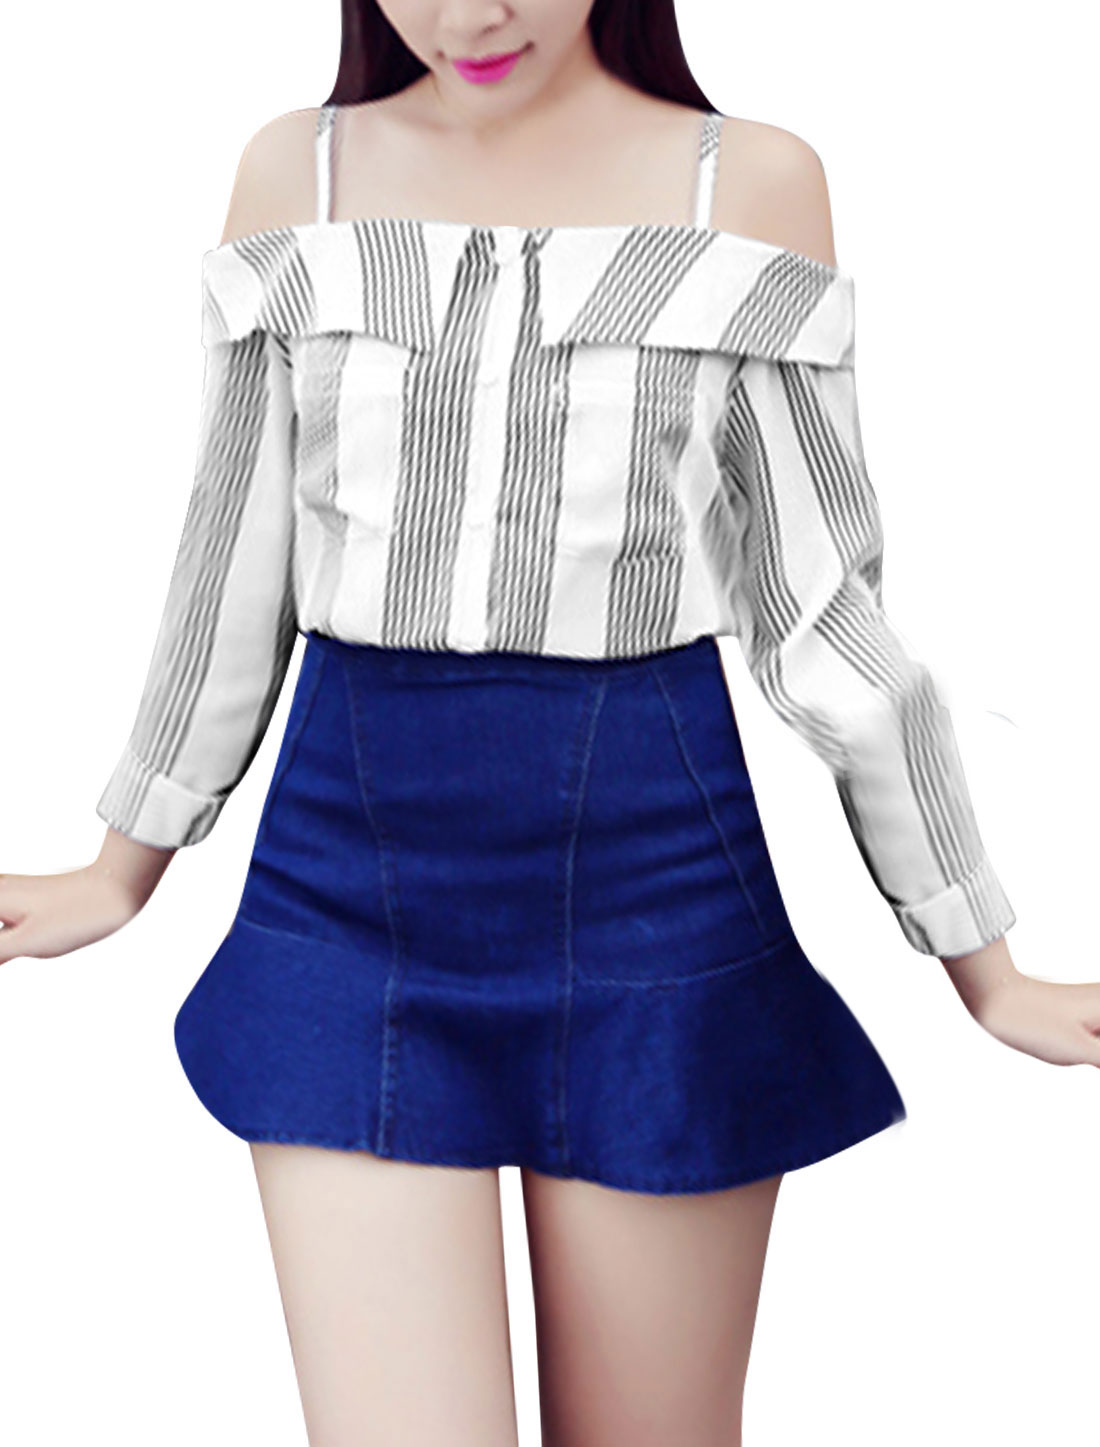 Lady Buttons Closed Vertical Stripes Pattern Casual Chiffon Shirt White S